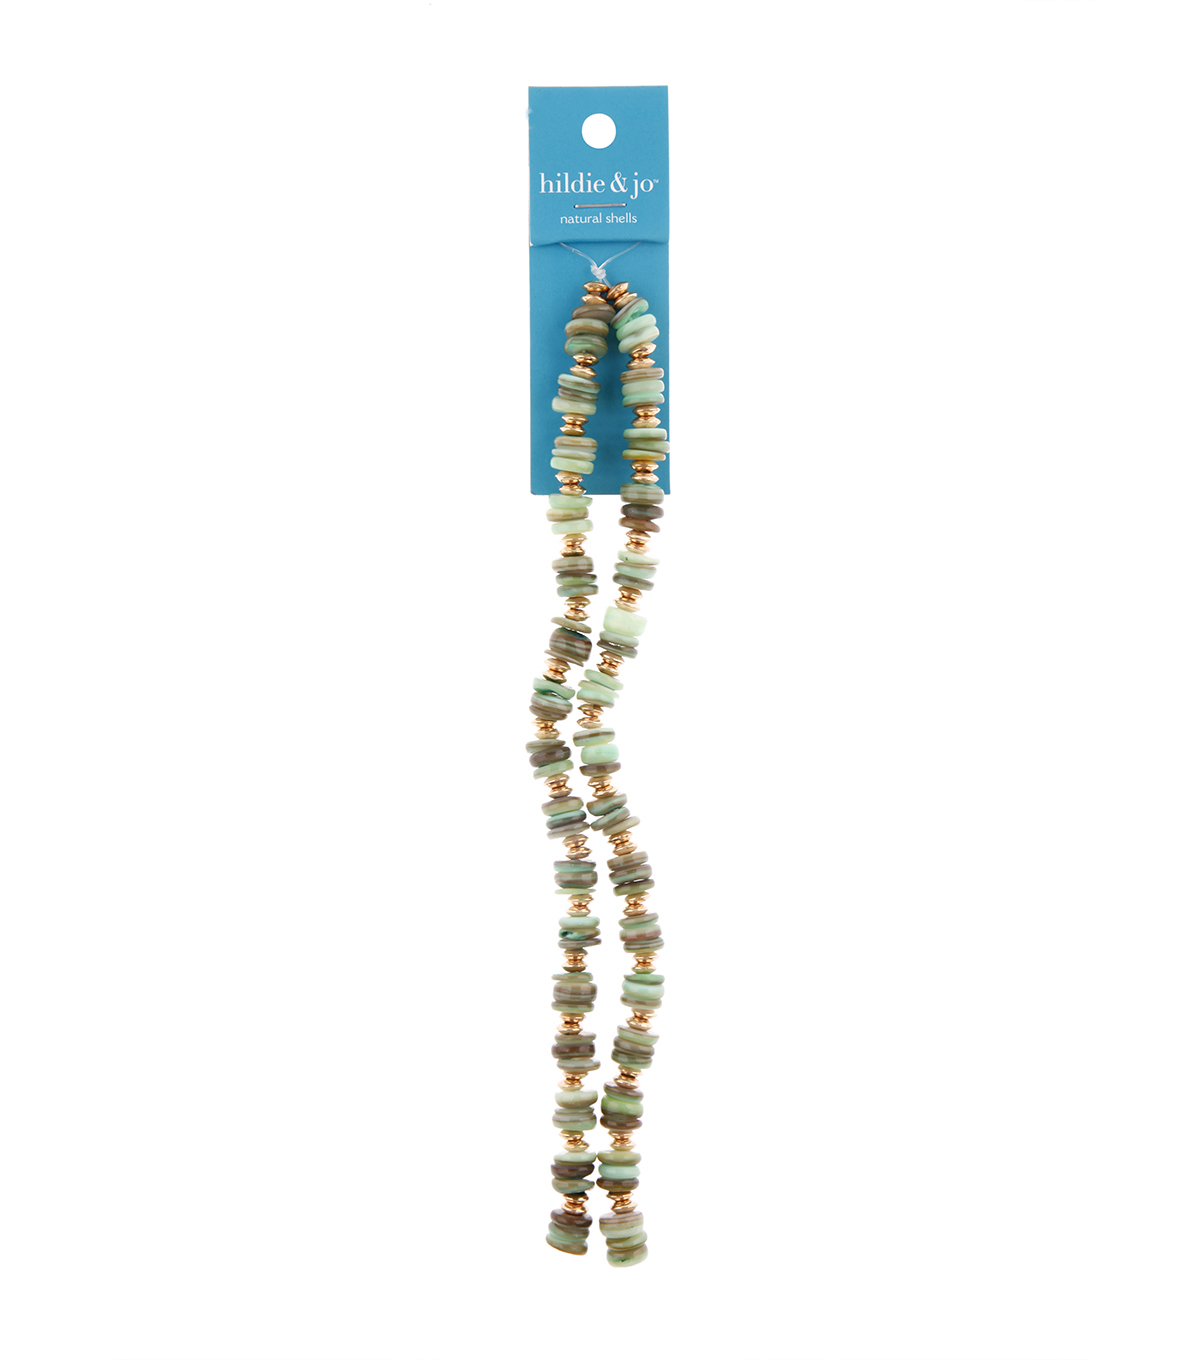 hildie & jo 14\u0022 Shell Strung Beads-Green